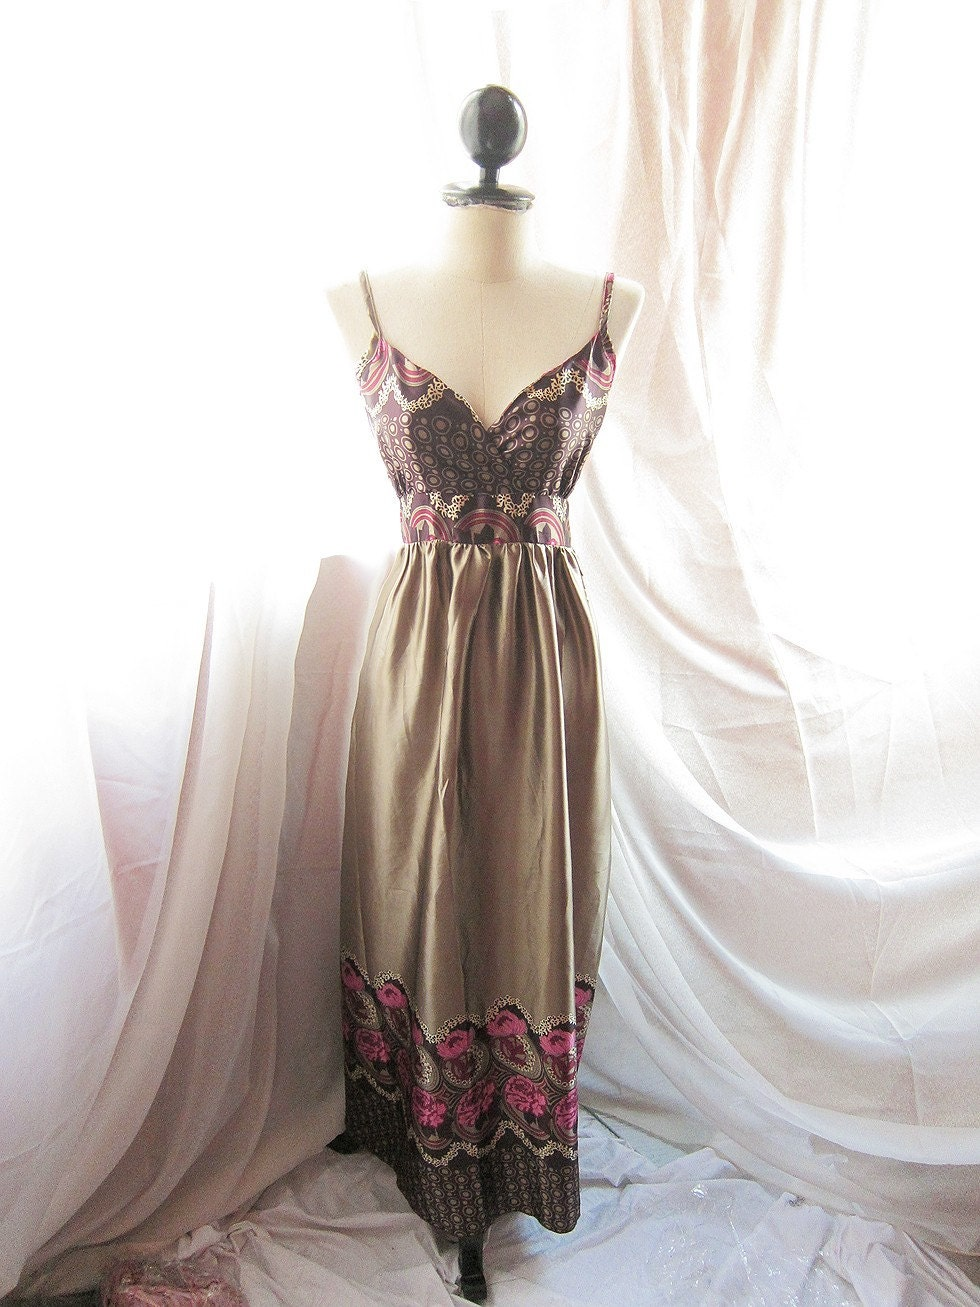 Seville Romance Venus Goddess Plum Peony Garland Motif Hippie Bohemian Dusty Olive Grayish Gold  Maxi Satin Dress Gown